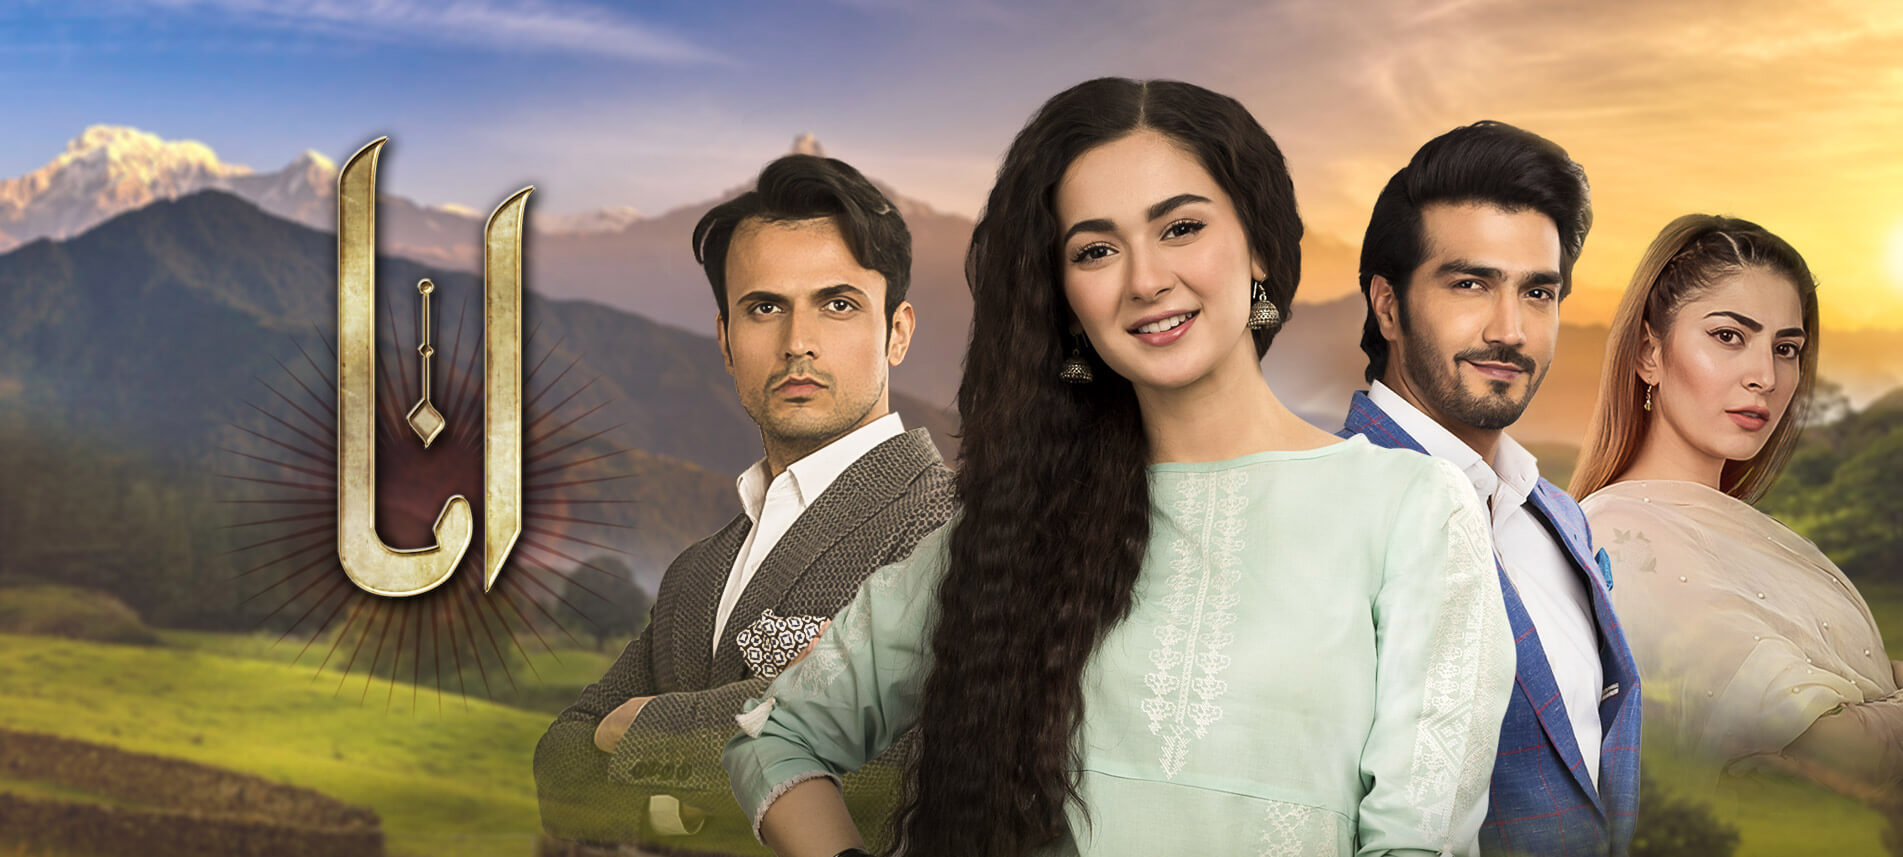 Watch Anaa Episode 17